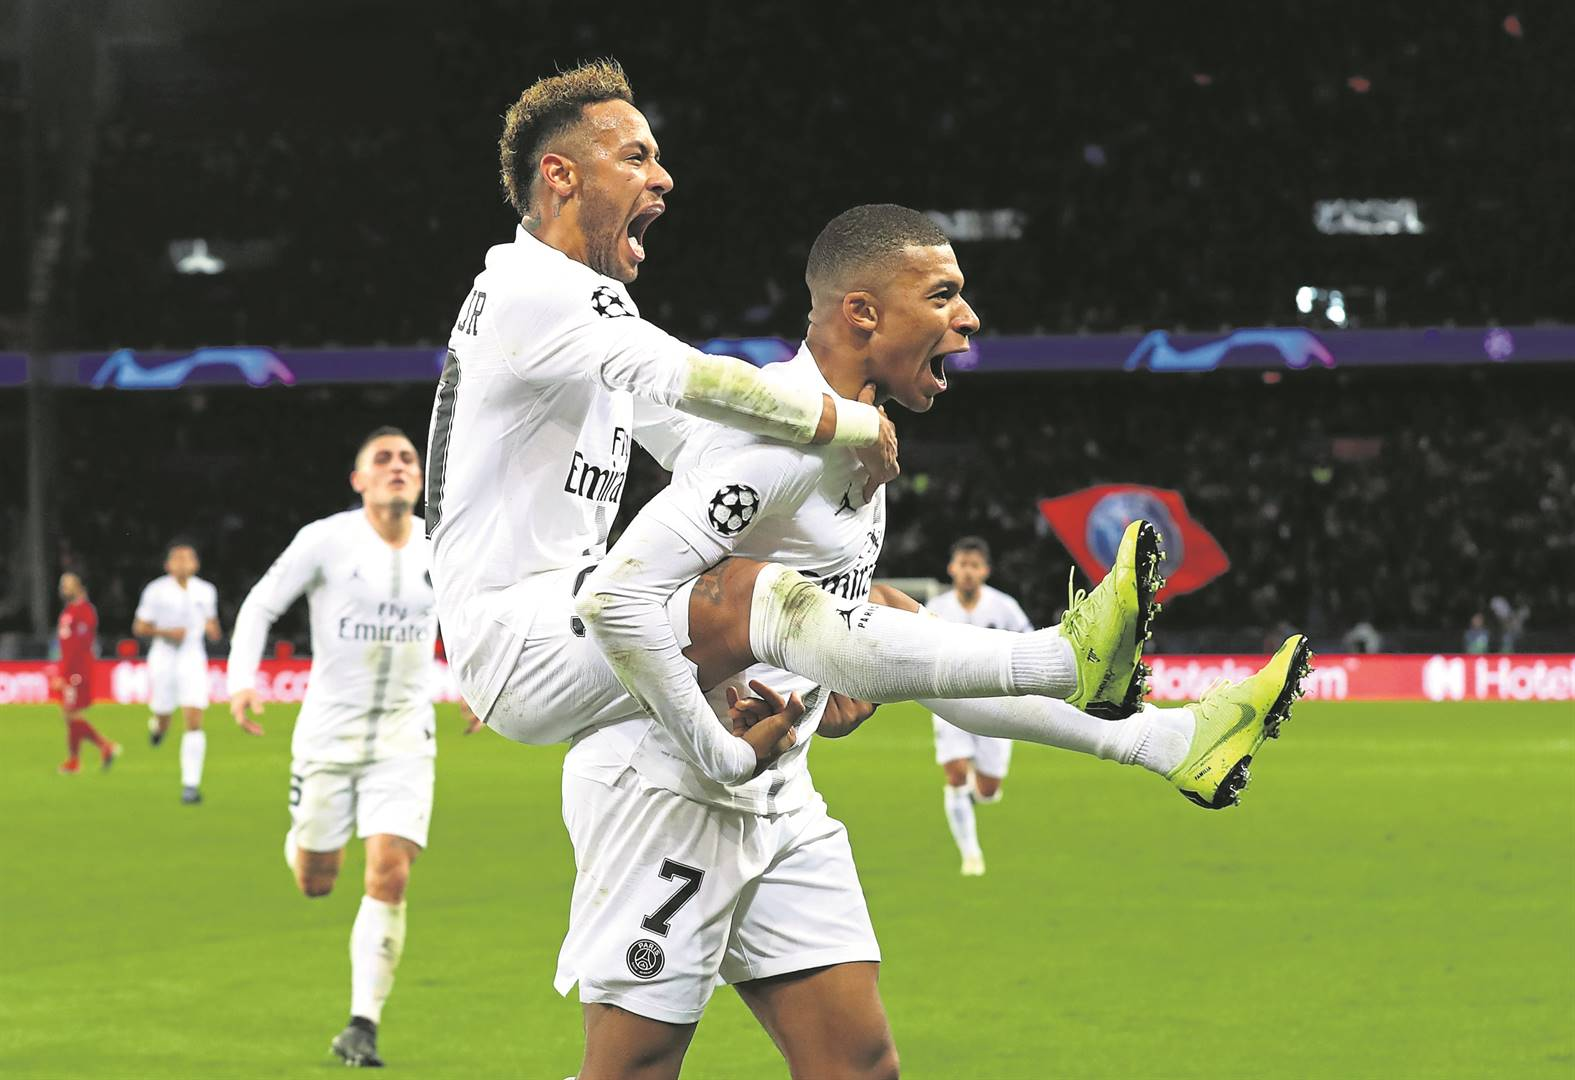 Neymar and Kylian Mbappe are carrying the hopes of PSG as they face Bayern Munich in Champions League last eight.Photo by Getty Images